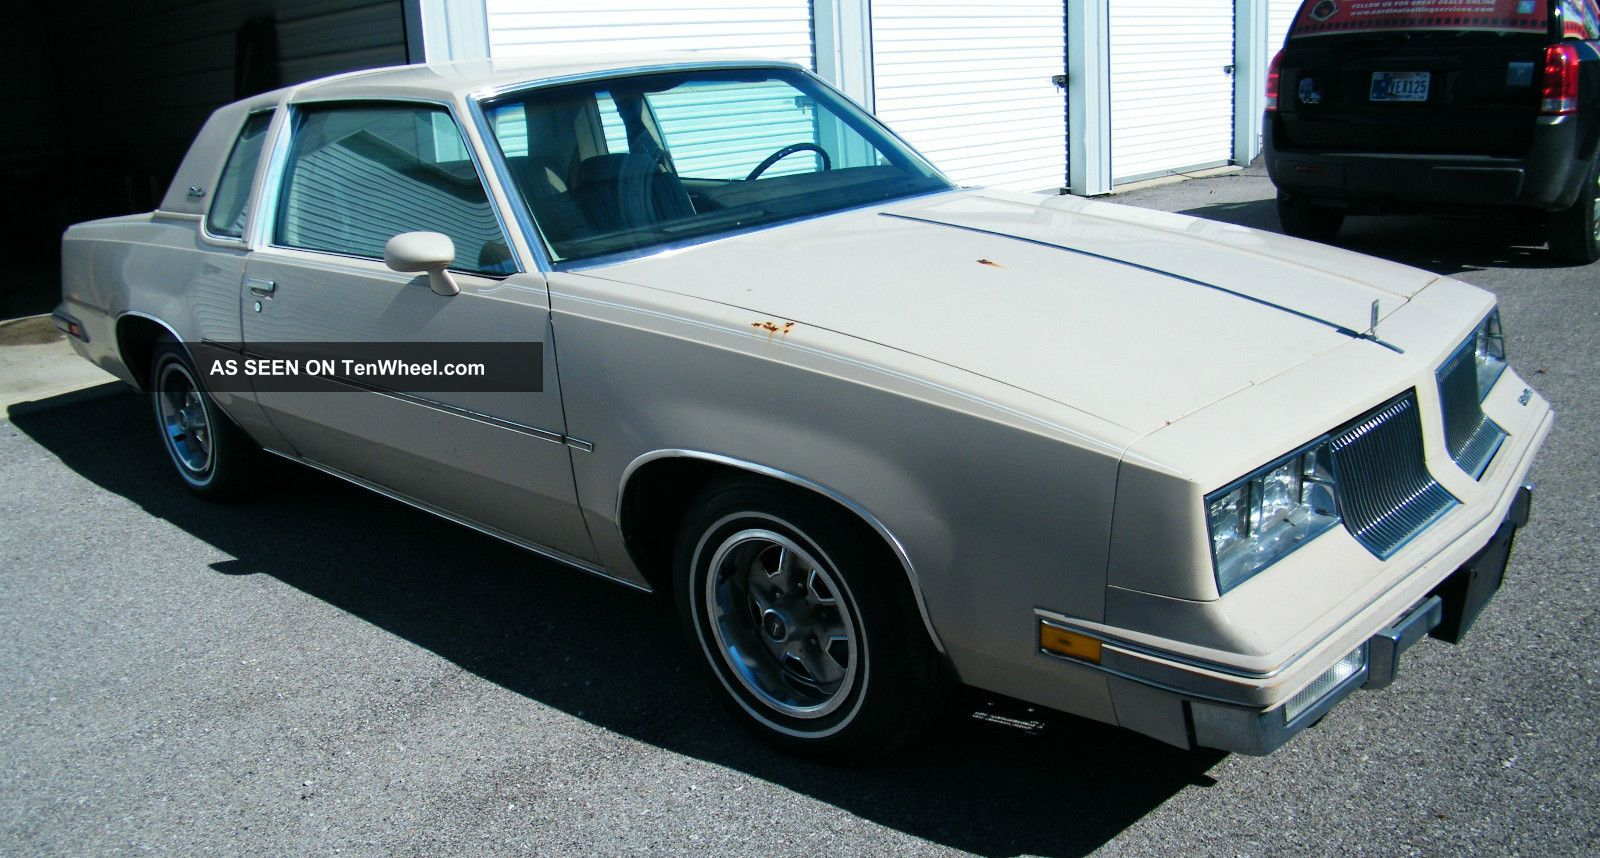 1981 oldsmobile cutlass supreme v6 2 door 4 4l beige good running car tenwheel